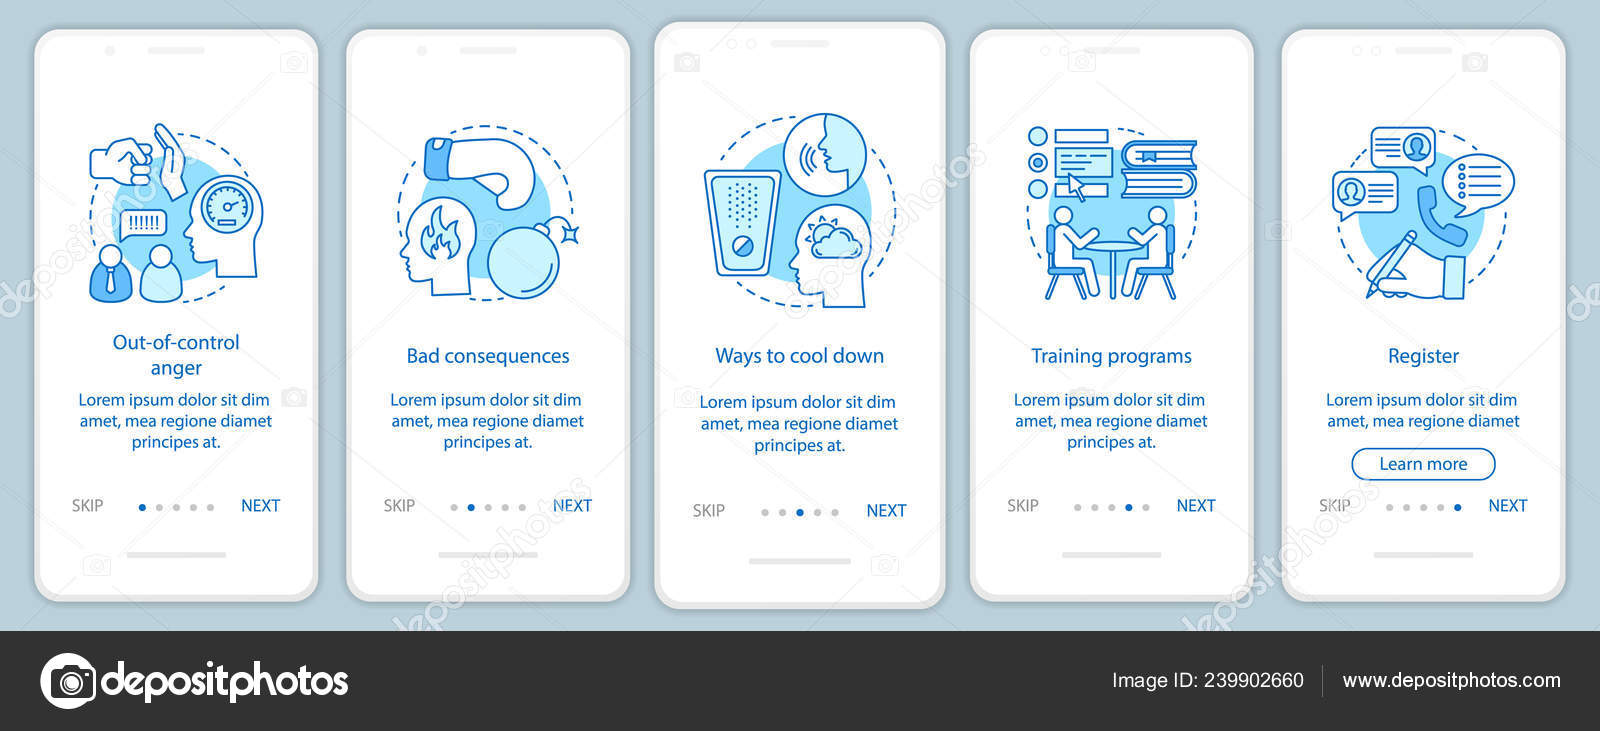 Anger Management Onboarding Mobile App Pages Screens — Stock